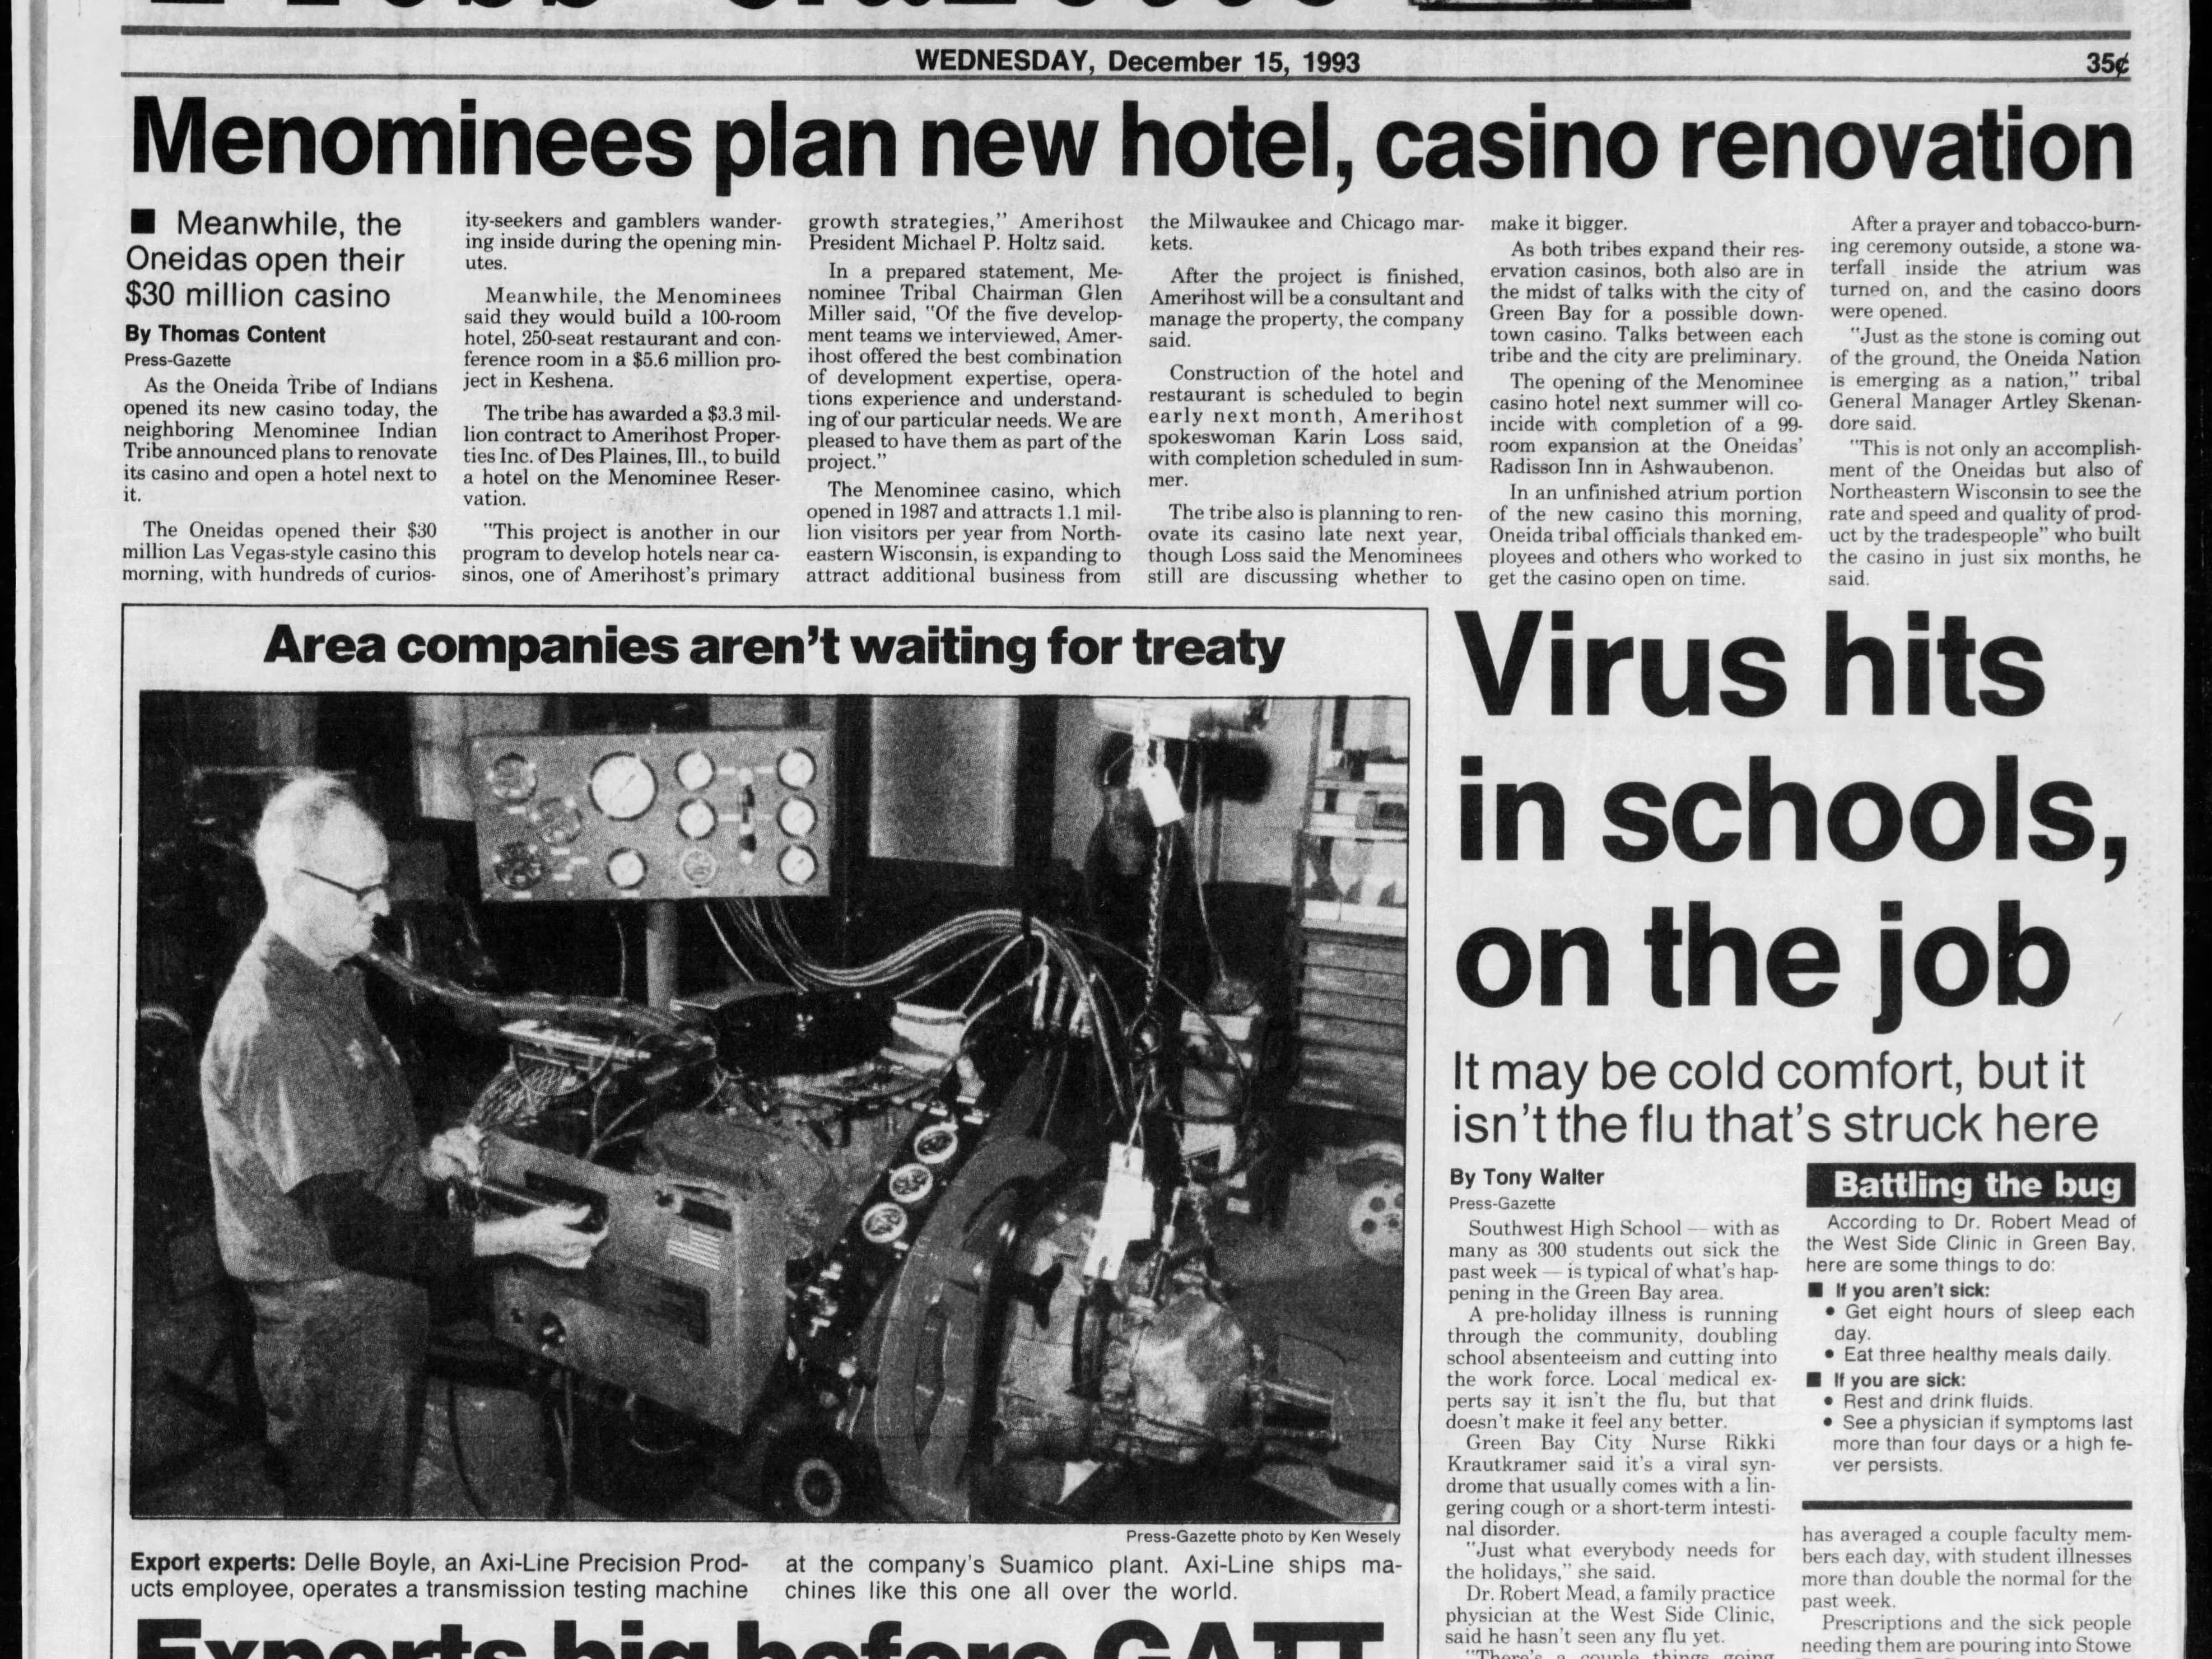 Today in History: Dec. 15, 1993